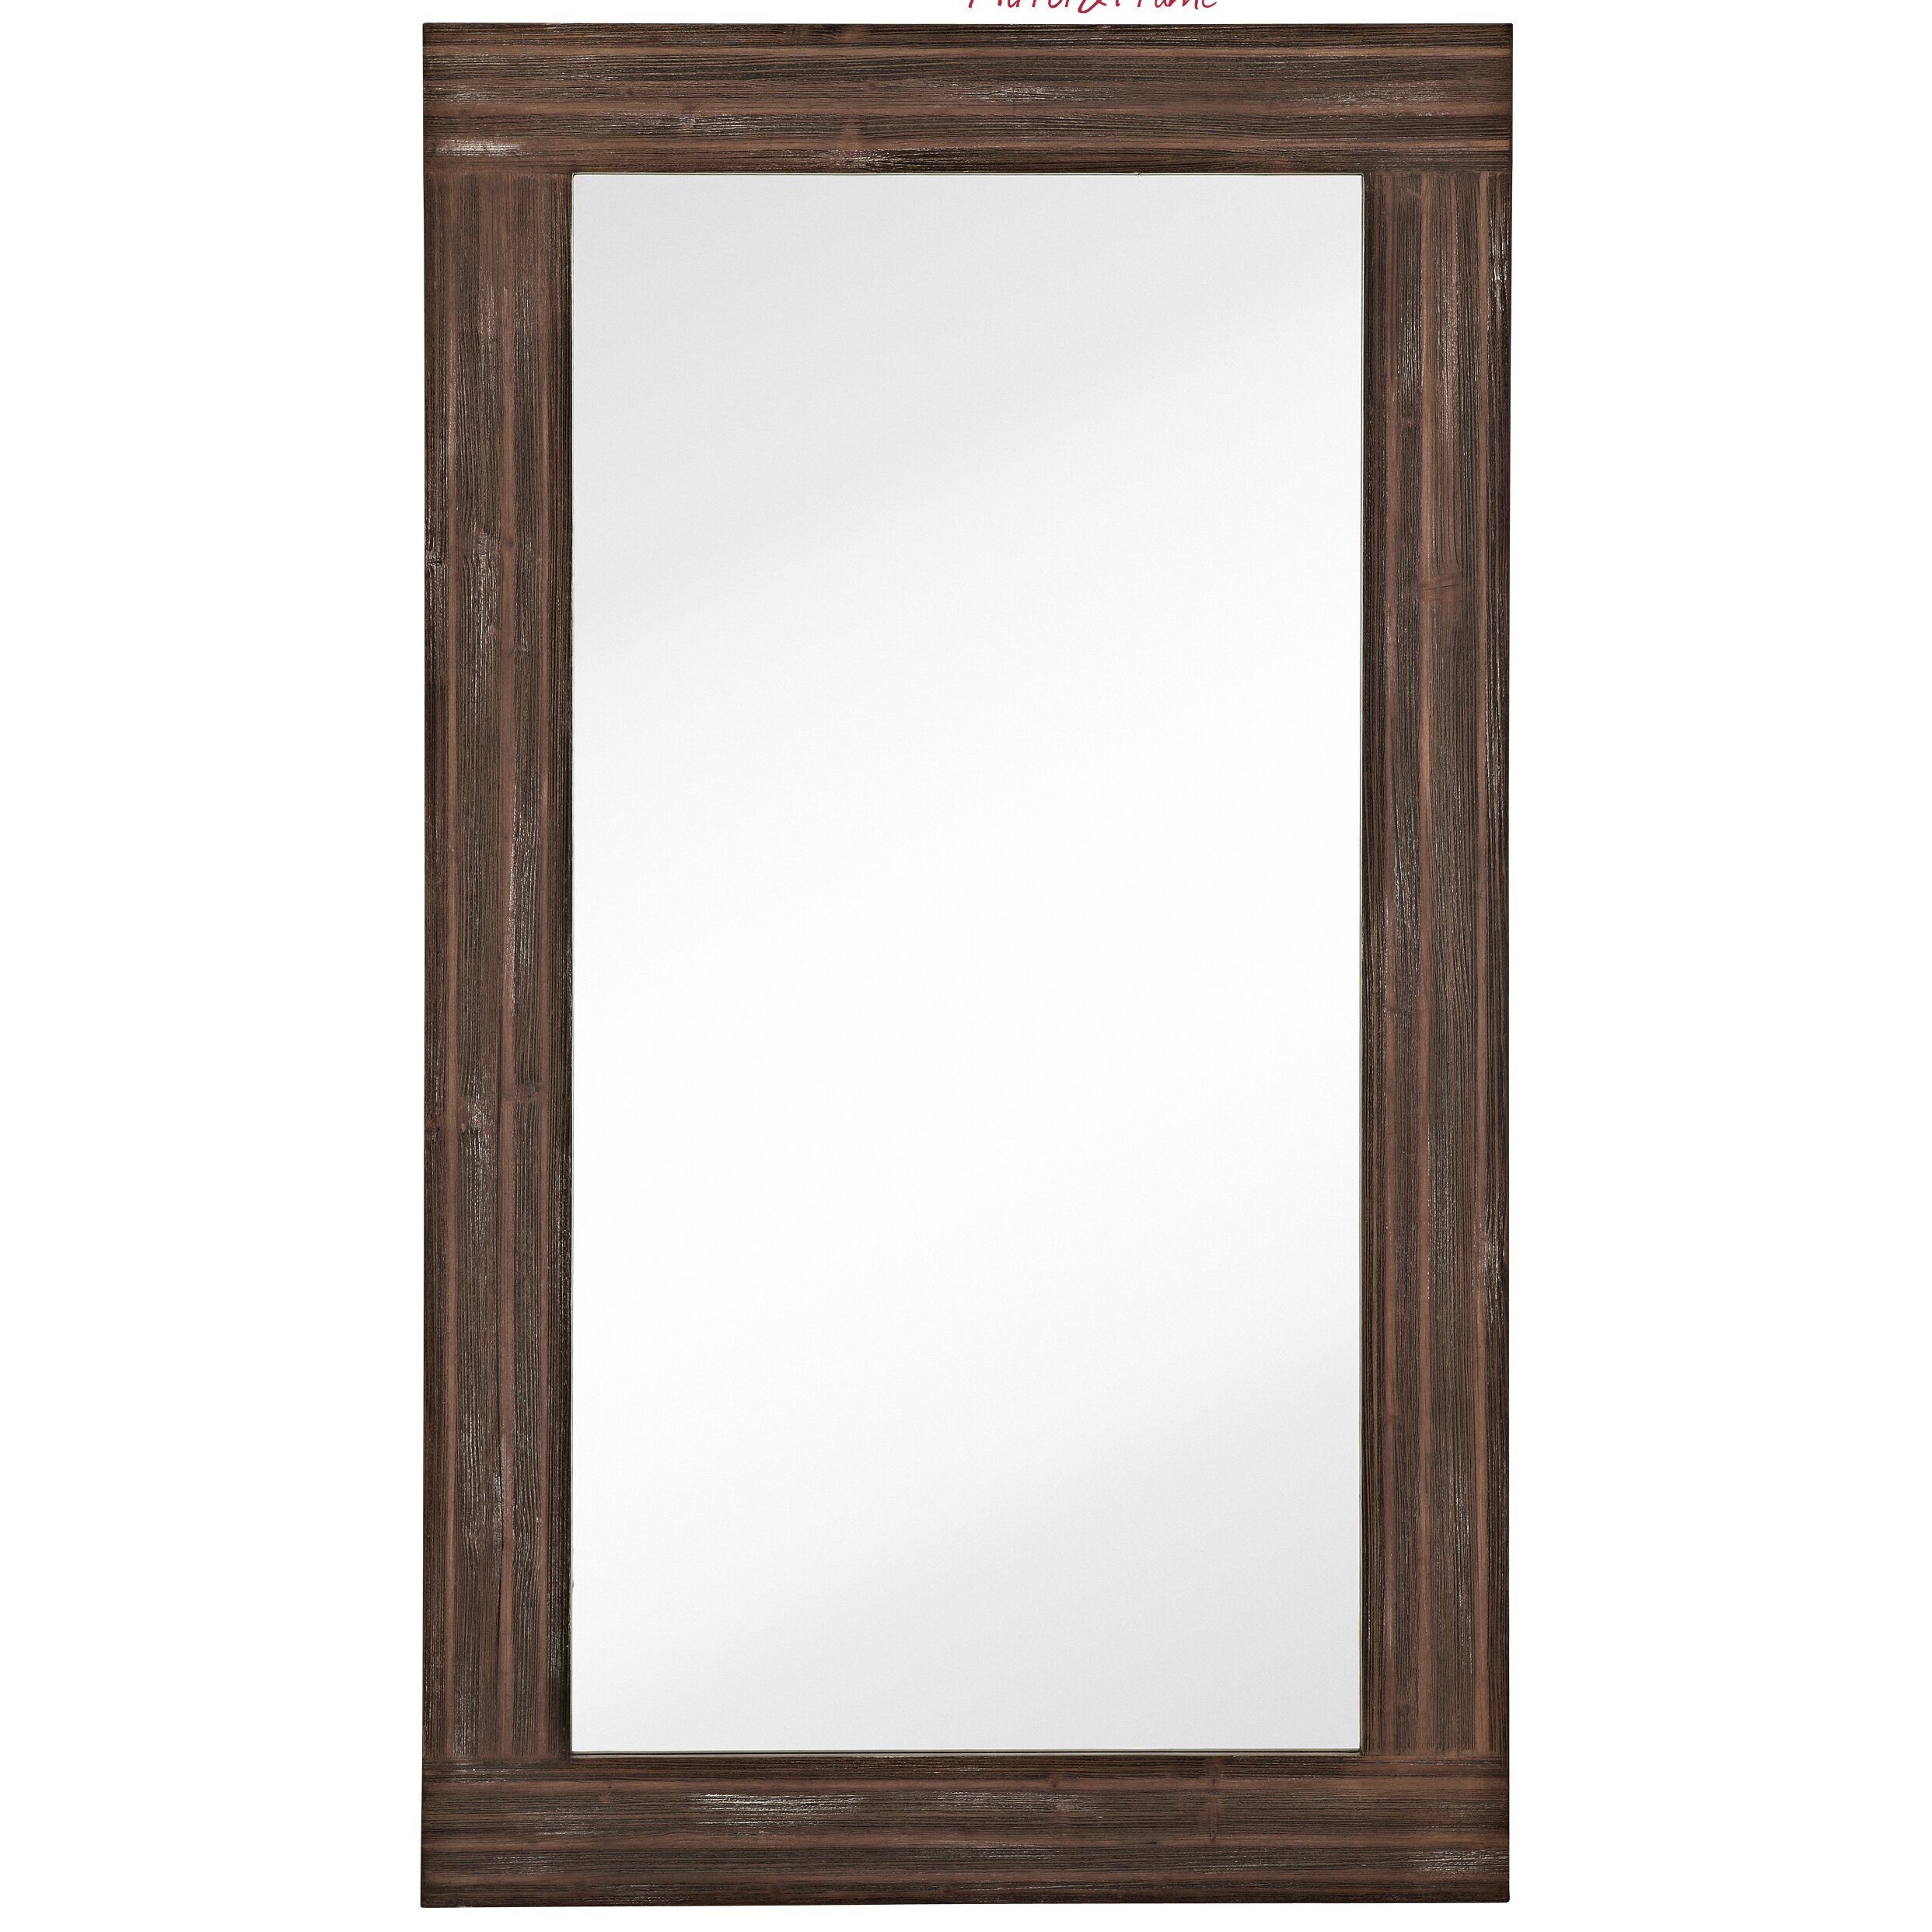 Large Framed Mirror Glasses : Majestic Mirror Large Traditional Rectangular Walnut ...